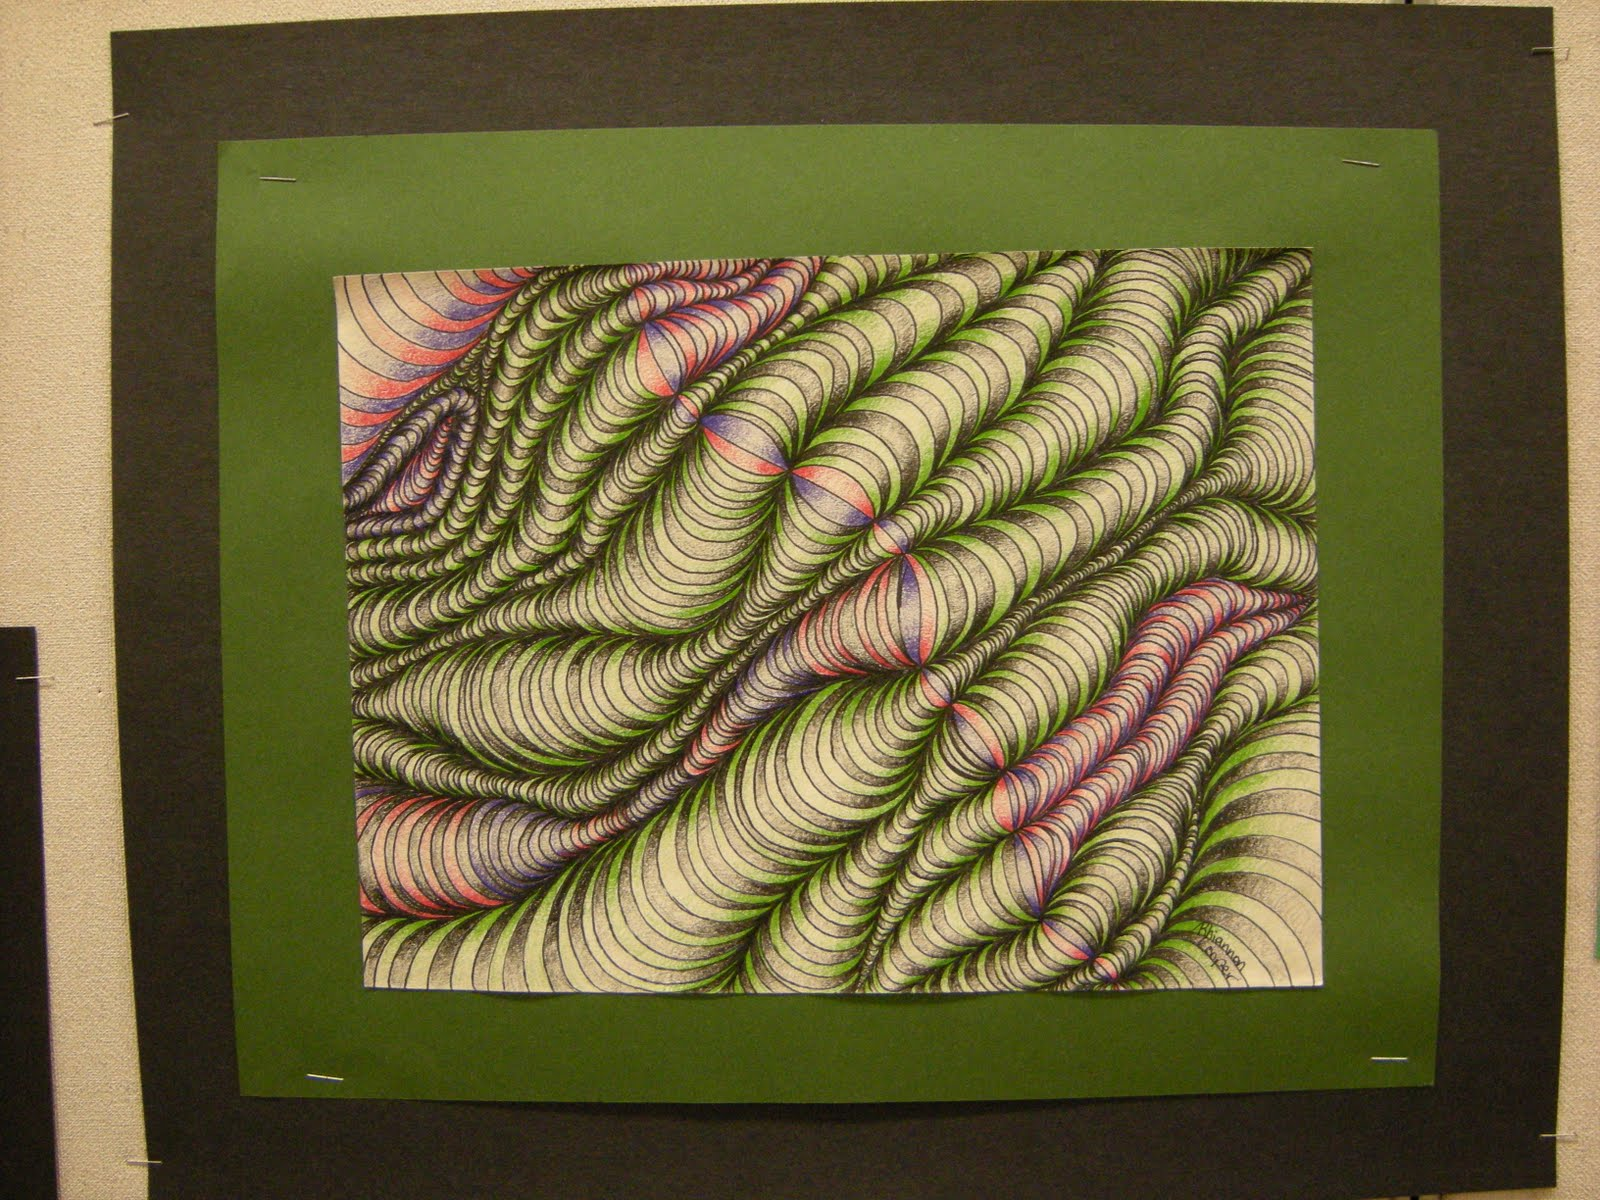 Tart Teaching Art With Attitude Curved Line Designs